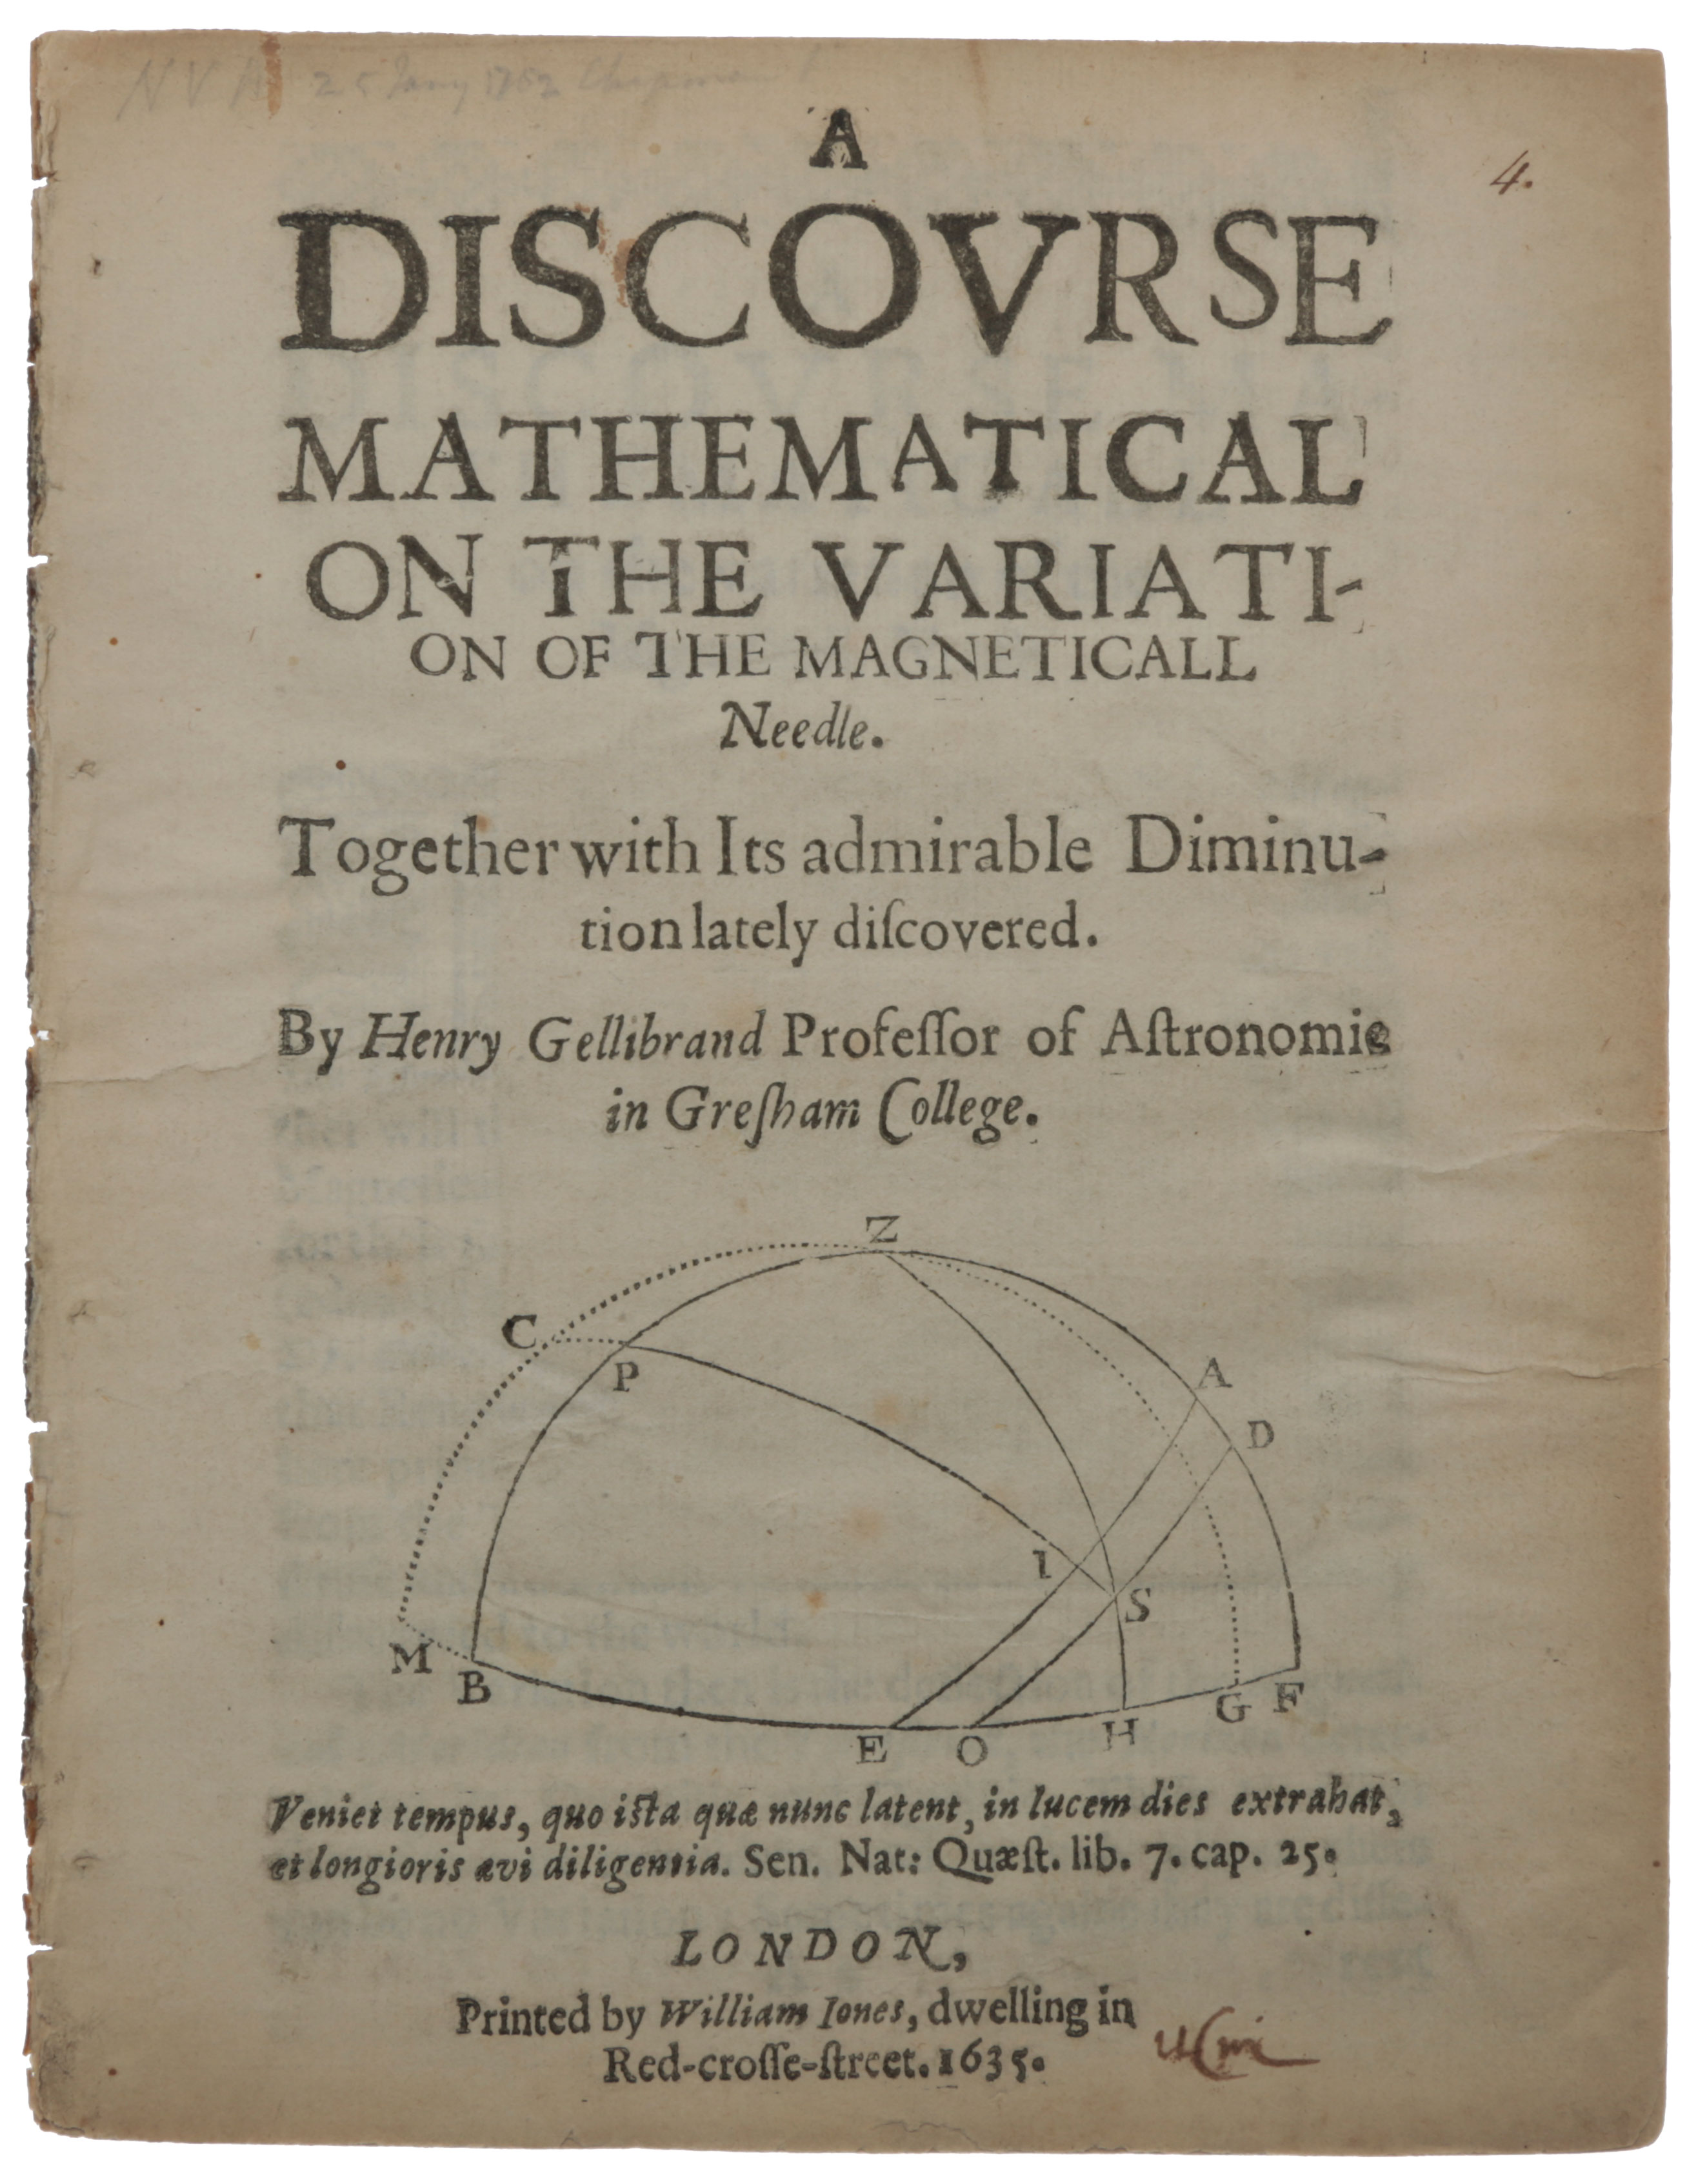 A Discourse Mathematical on the Variation of the Magneticall Needle. Together with its admirable Diminution lately discovered. Henry GELLIBRAND.